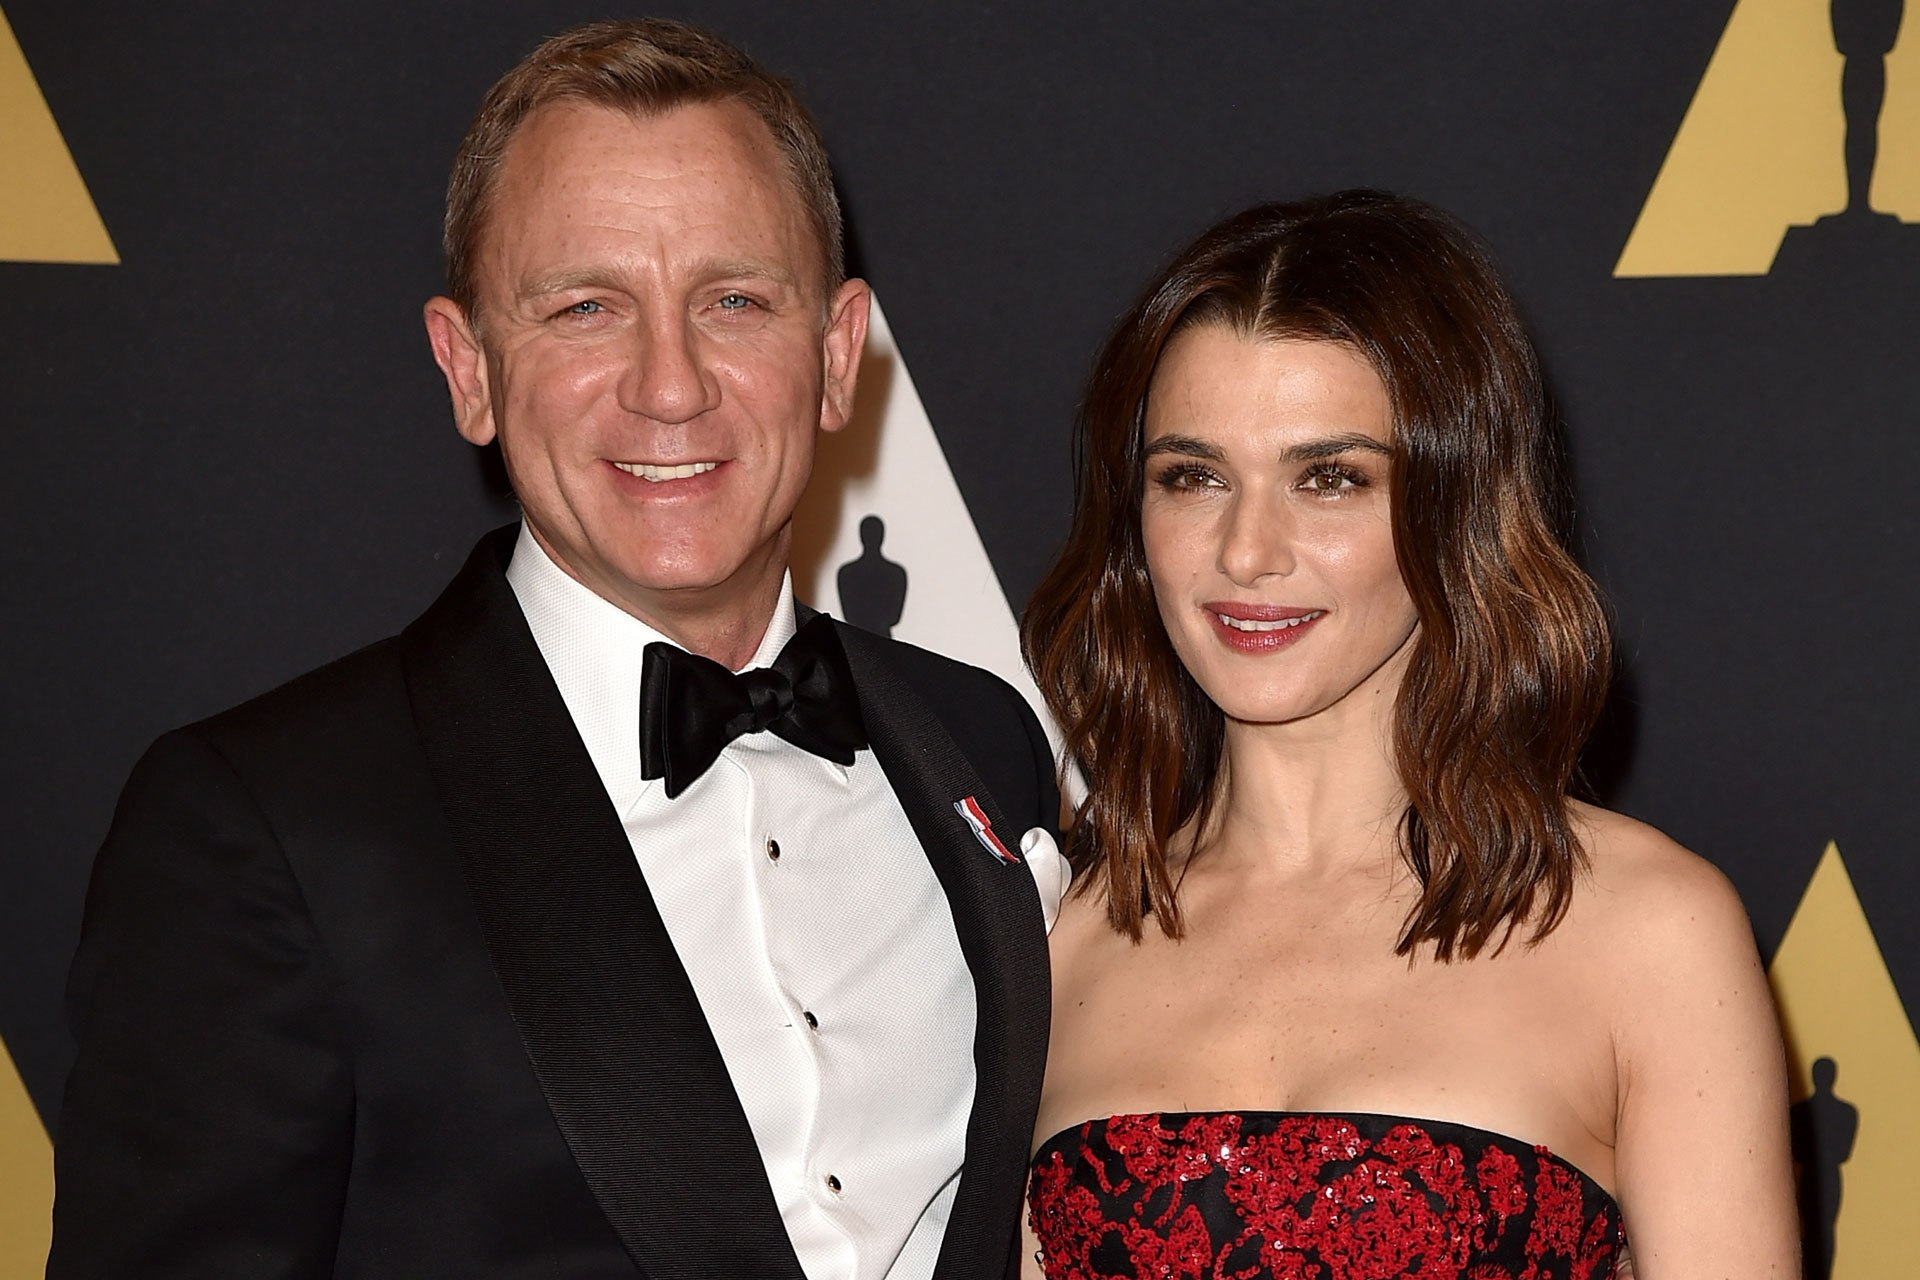 Daniel Craig and Rachel Weisz are expecting their first child together